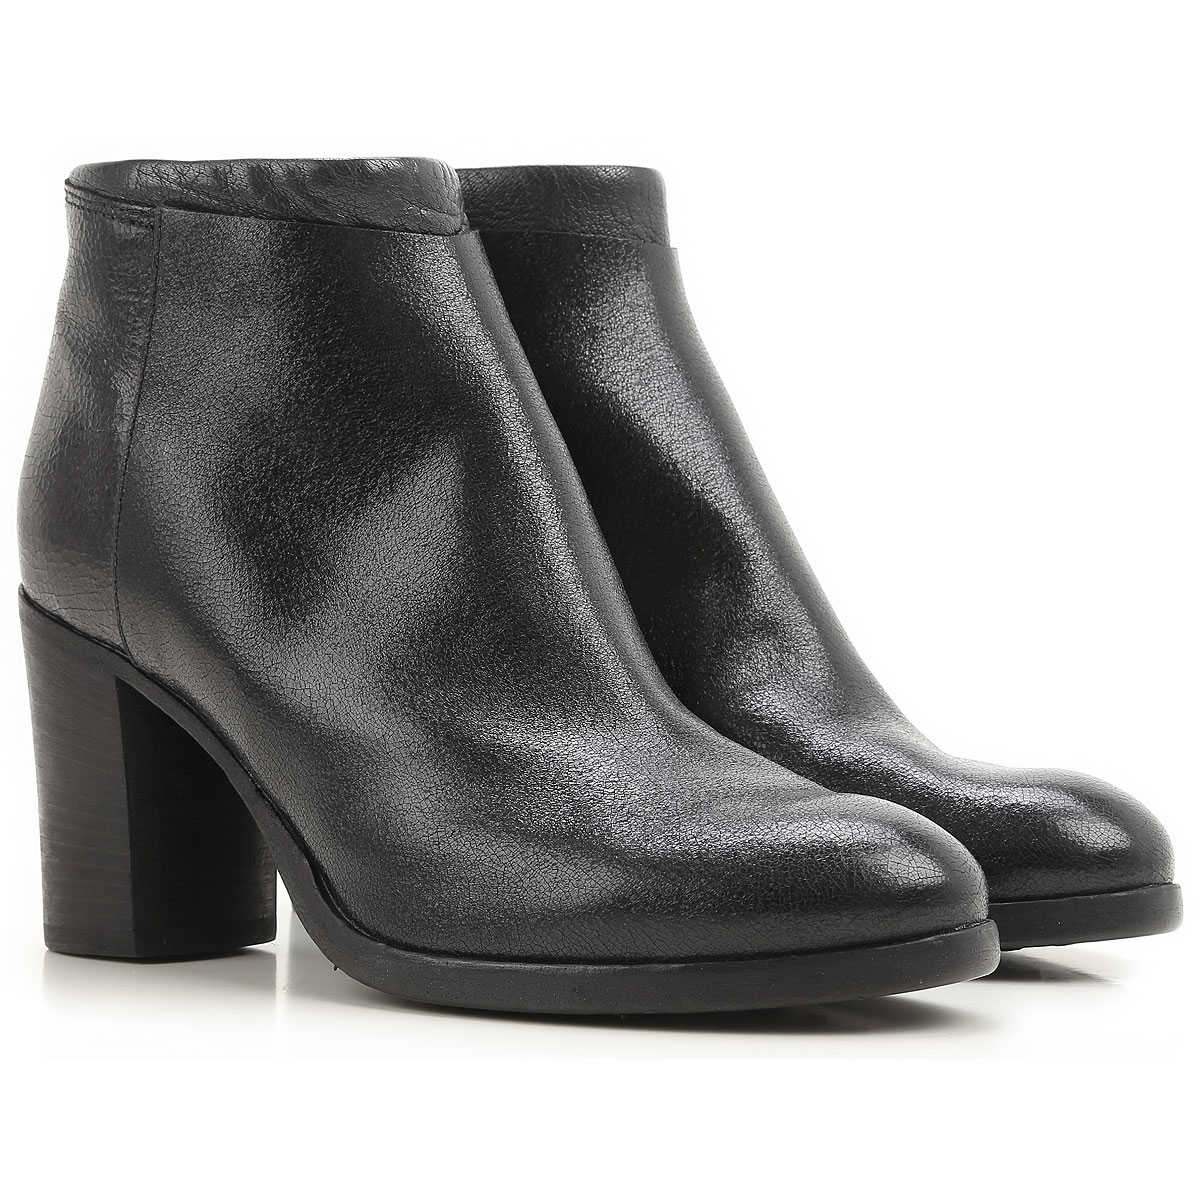 Moma Boots for Women Booties On Sale in Outlet USA - GOOFASH